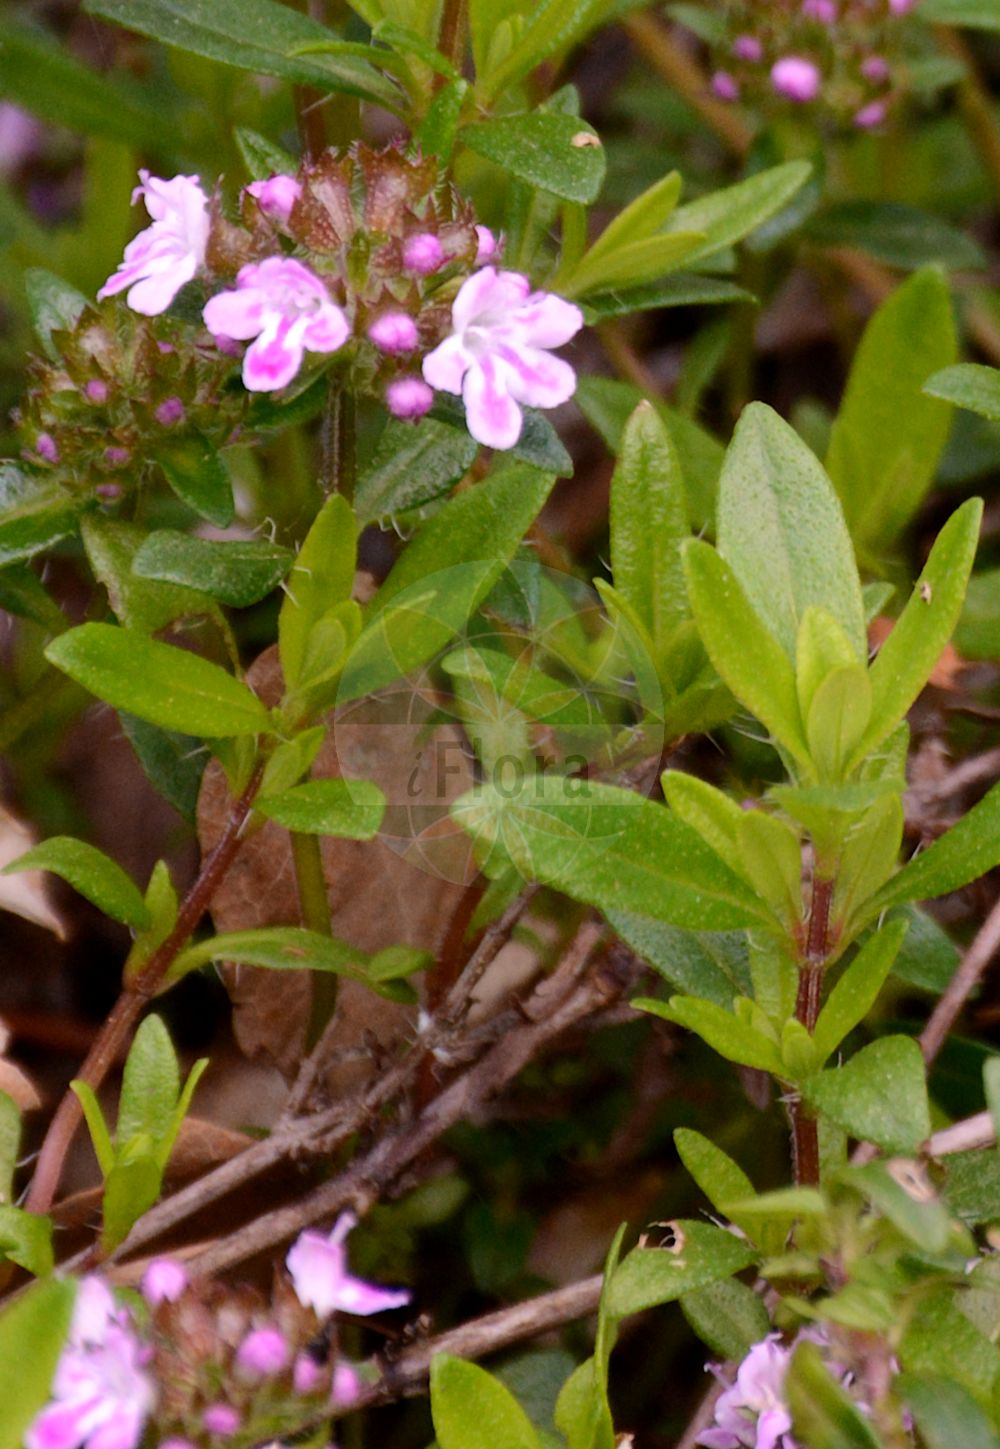 Foto von Thymus longicaulis. Das Foto wurde in Bremen, Deutschland aufgenommen. ---- Photo of Thymus longicaulis.The picture was taken in Bremen, Germany.(Thymus longicaulis,Thymus striatus var. longicaulis,Thymus,Thymian,Thyme,Lamiaceae,Lippenbluetengewaechse;Lippenbluetler,Nettle family)